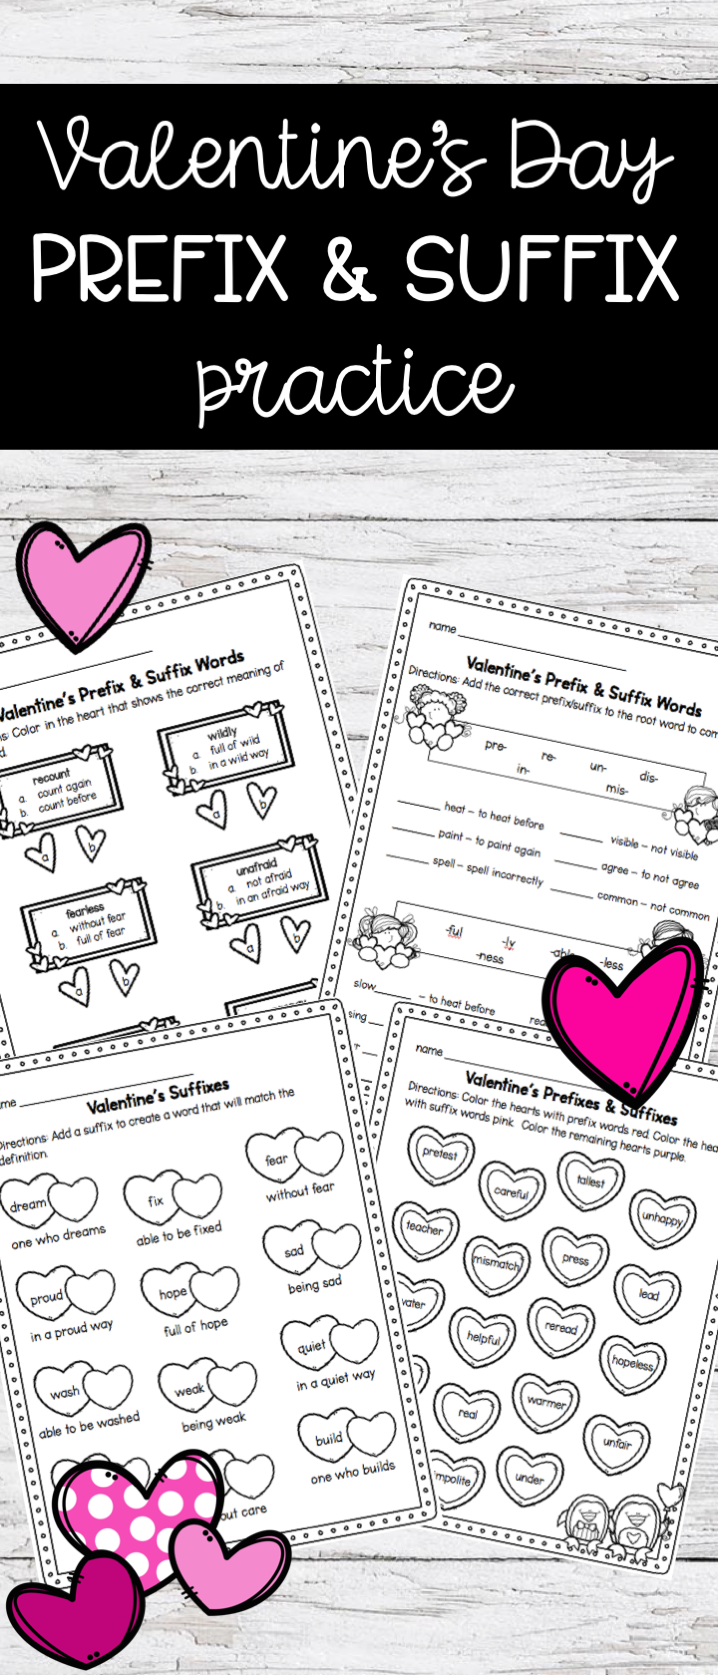 Workbooks suffix worksheets : Valentine's themed prefix and suffix worksheets for February ...